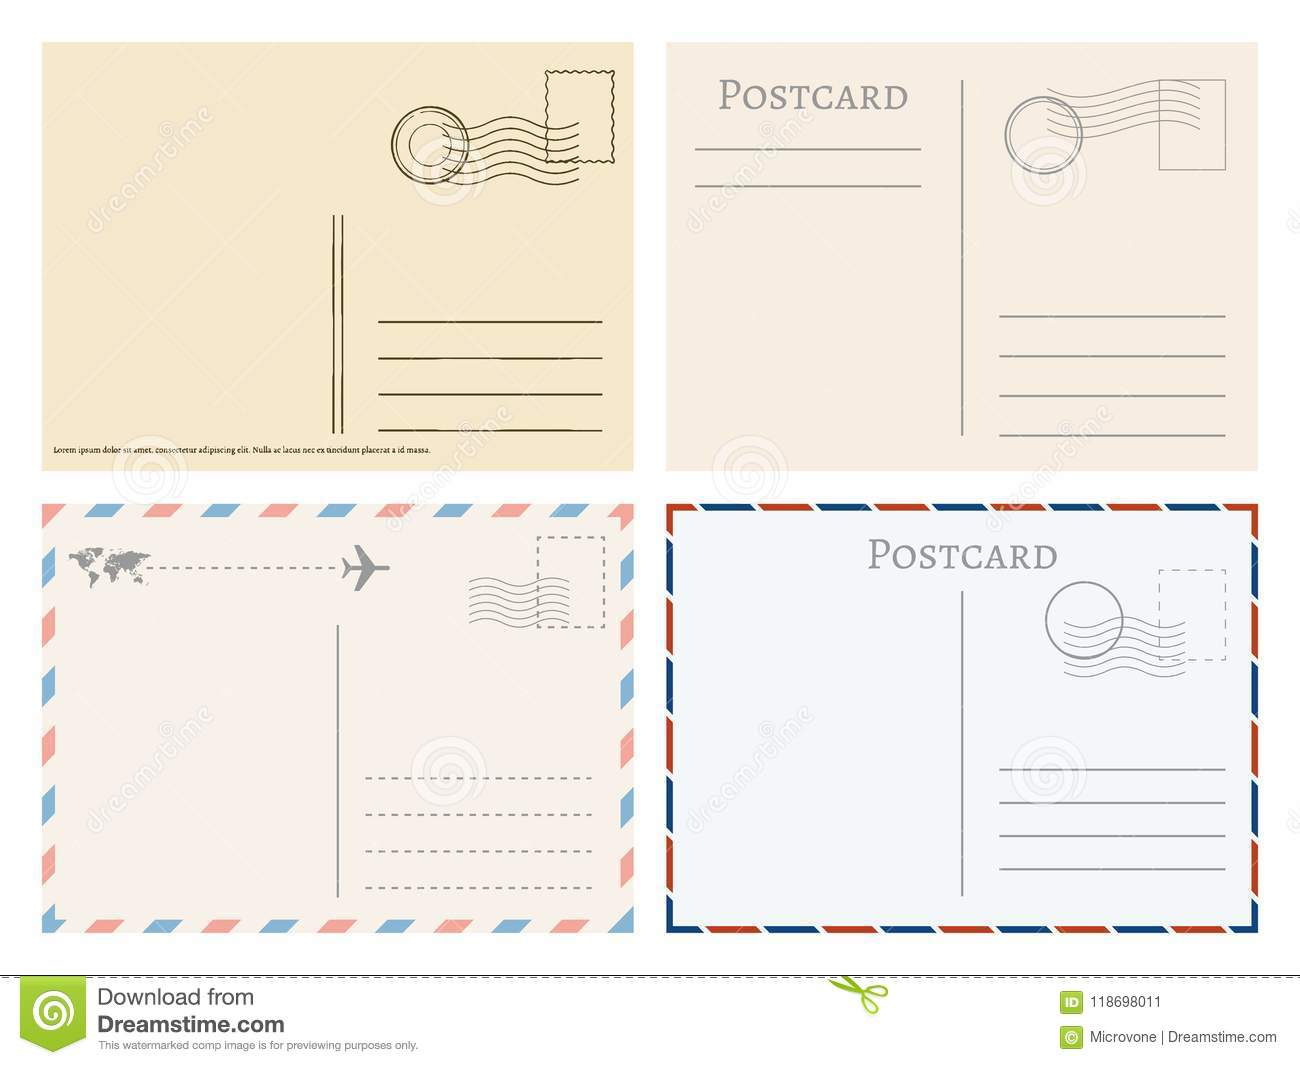 vintage paper postal cards greetings from postcard vector template